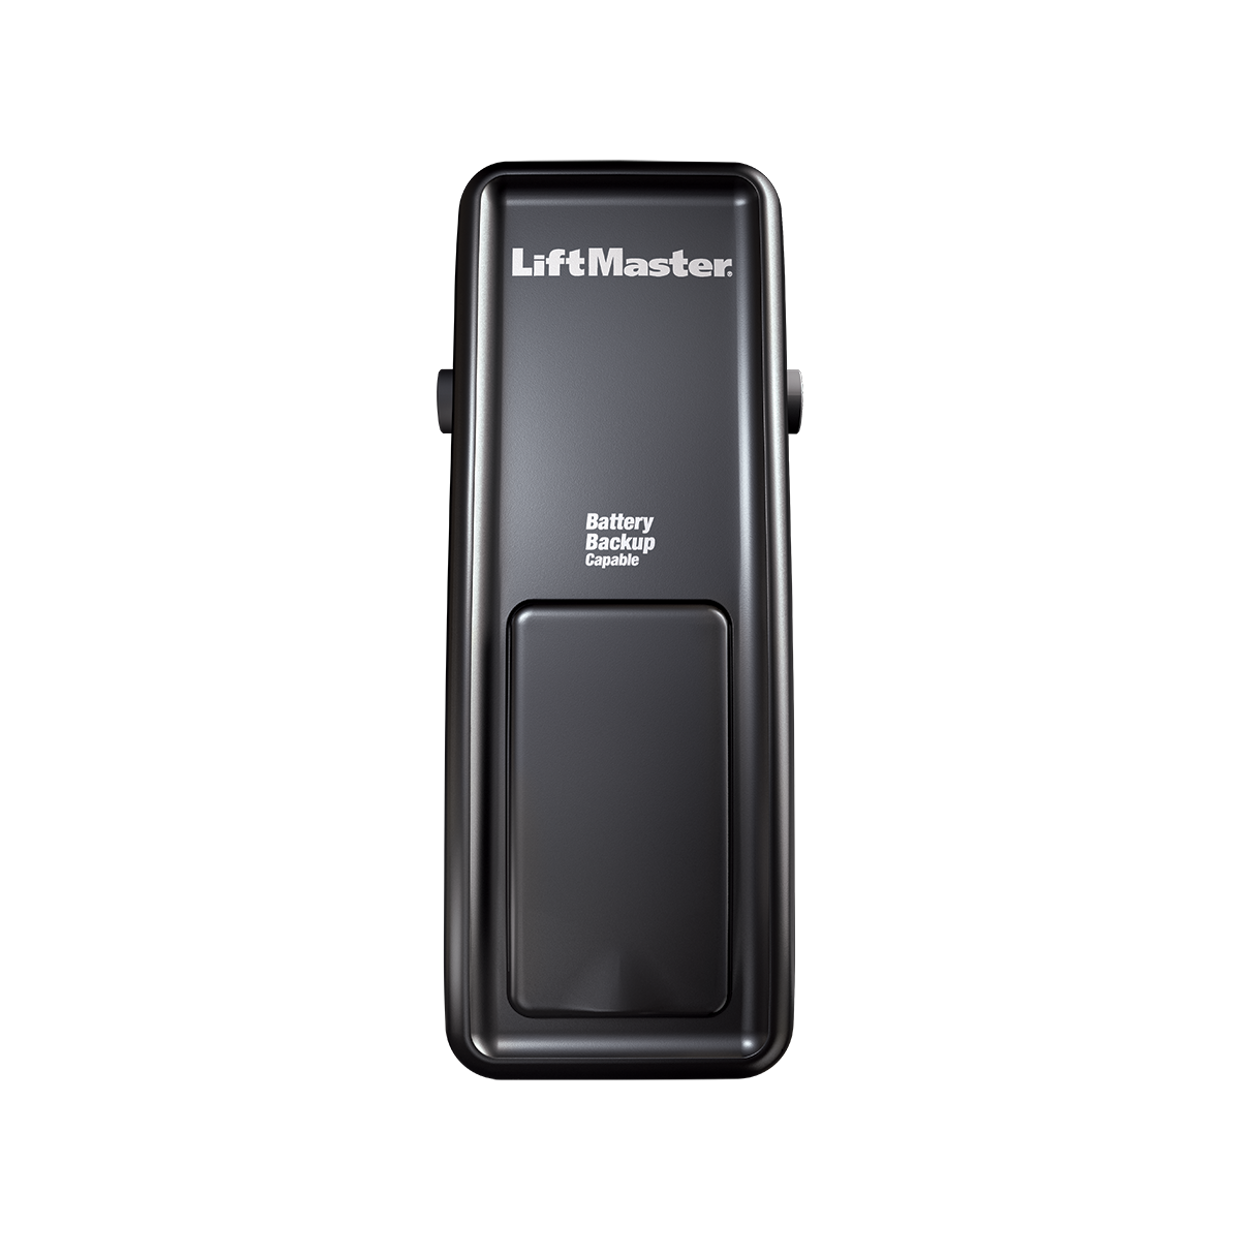 Elite Series 8500 Wall Mount Garage Door Opener Liftmaster Wiring Diagram As Well Chamberlain Battery Backup Capable Hero